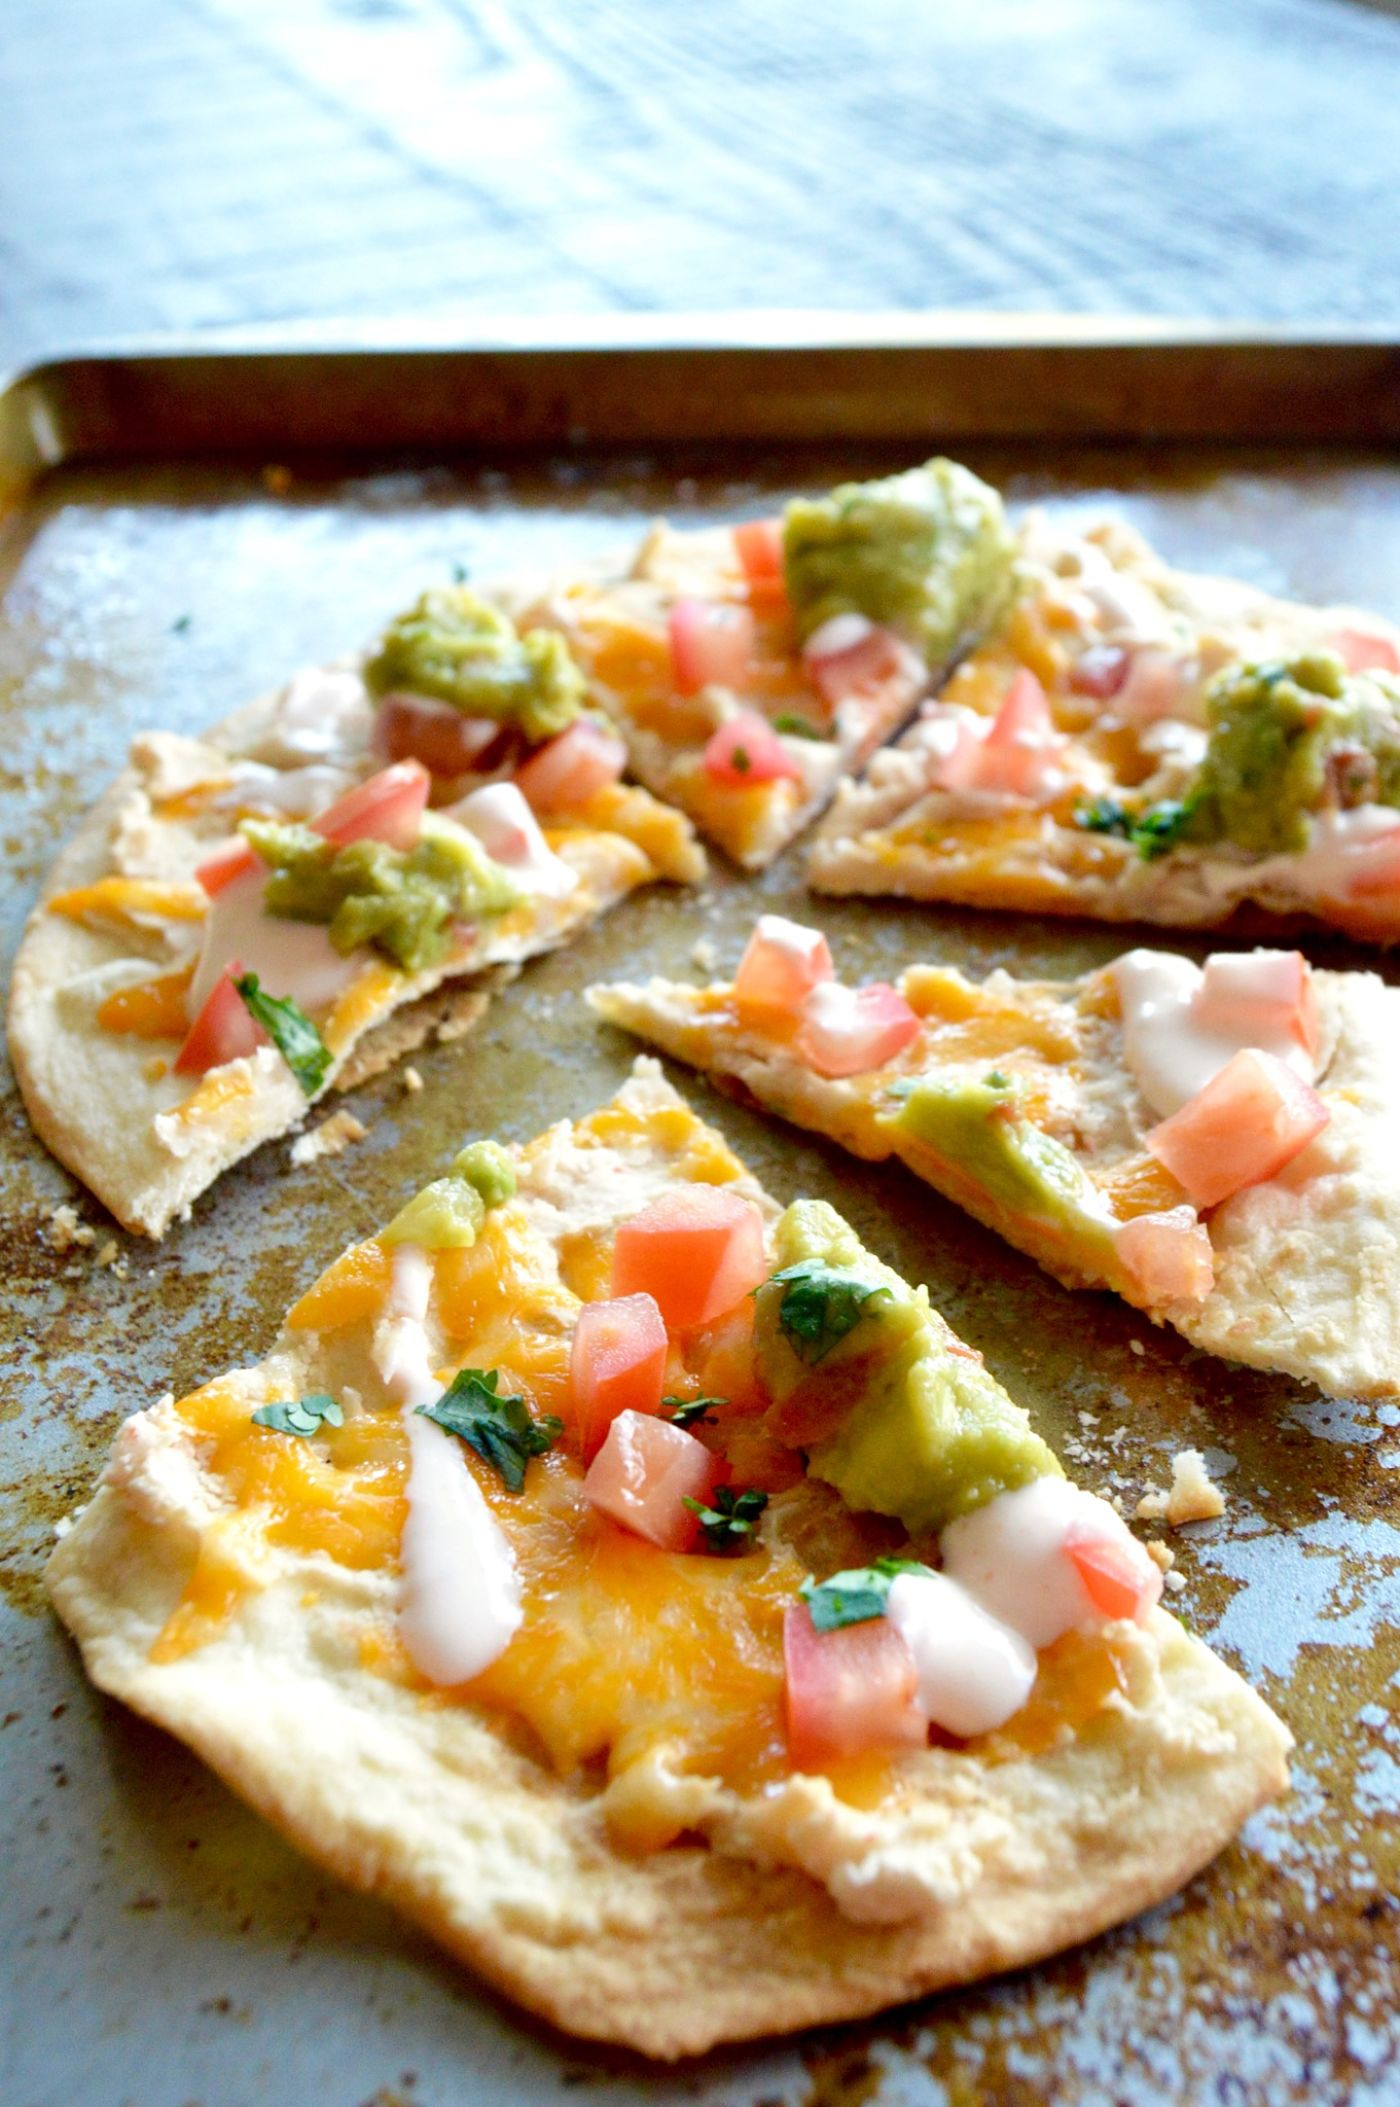 Healthy Tortilla White Bean Pizza cut on a tray ready for immediate serving!